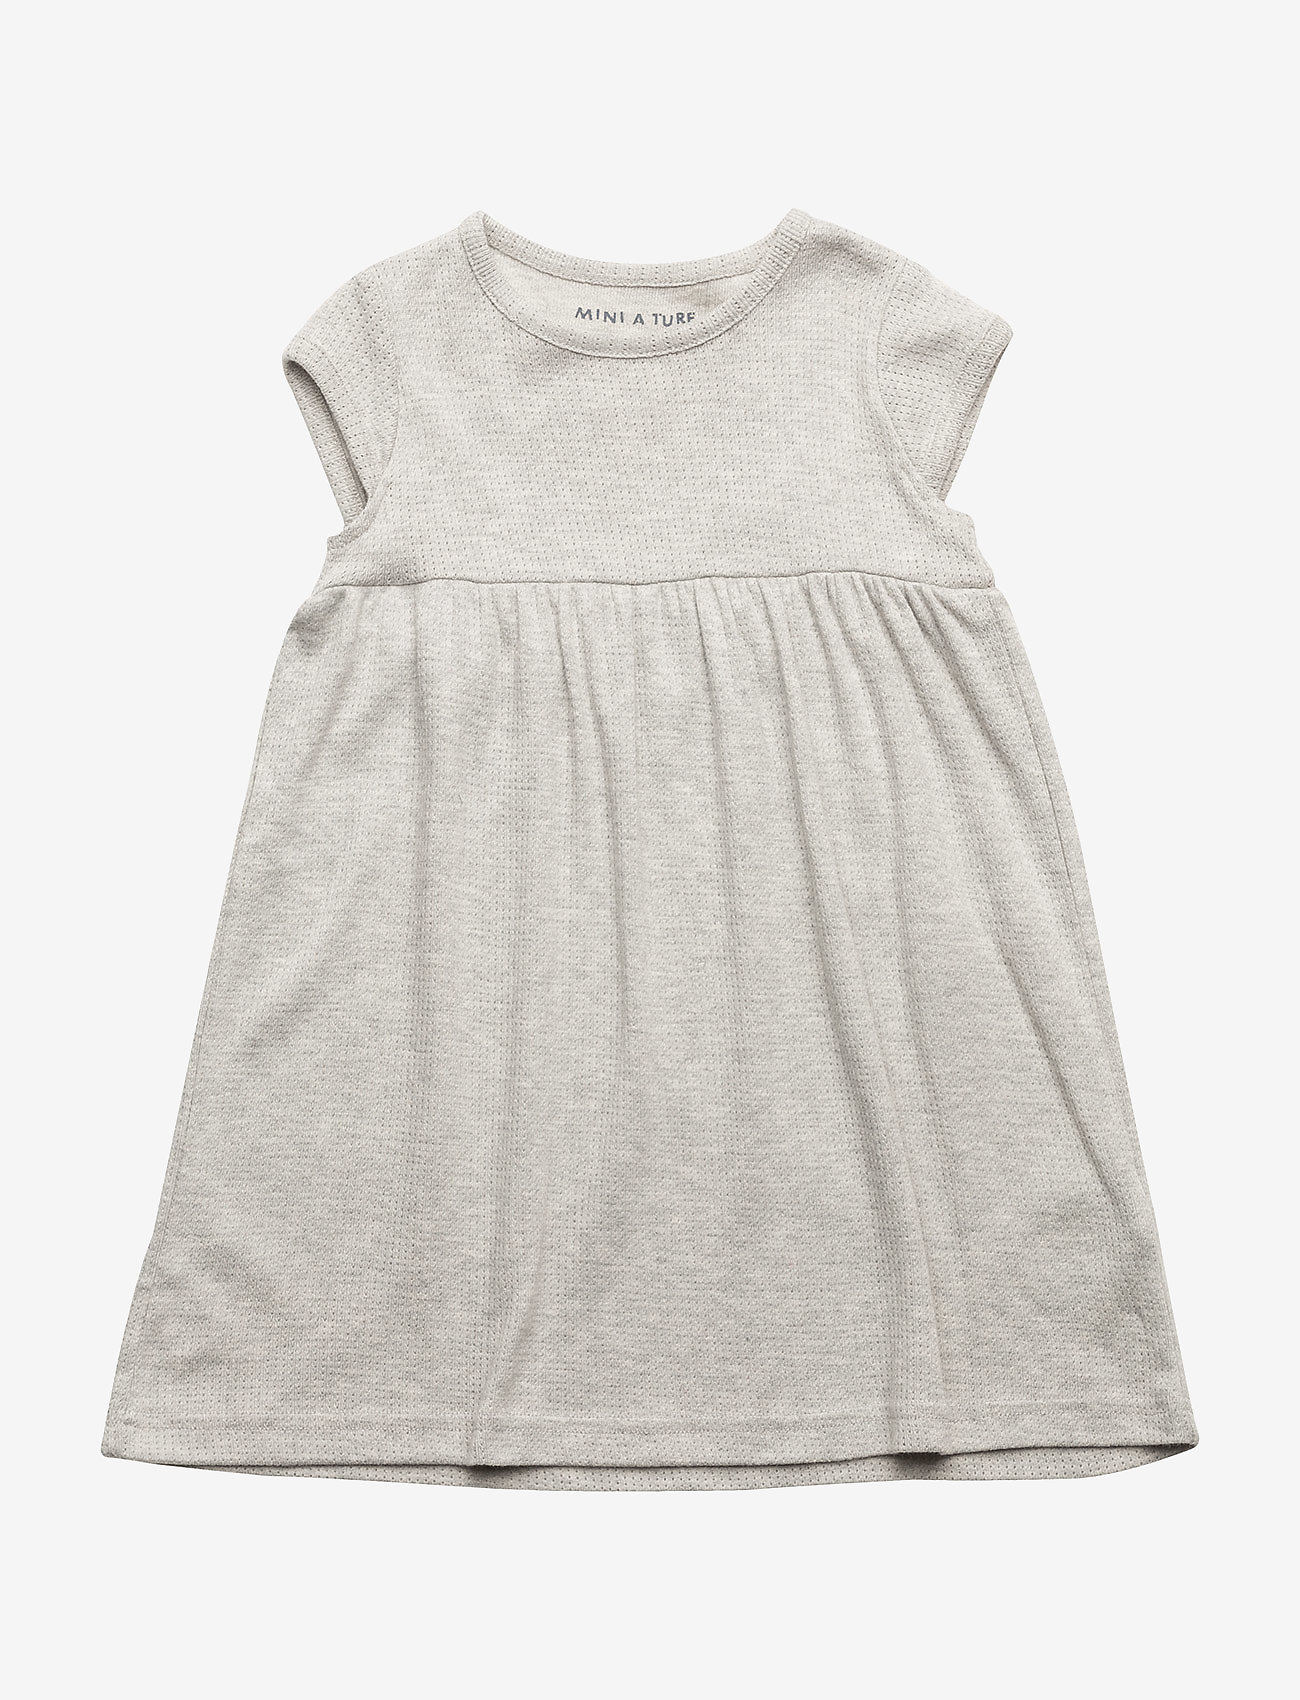 Mini A Ture - Else SS Dress, BM - kjoler - light grey melange - 0